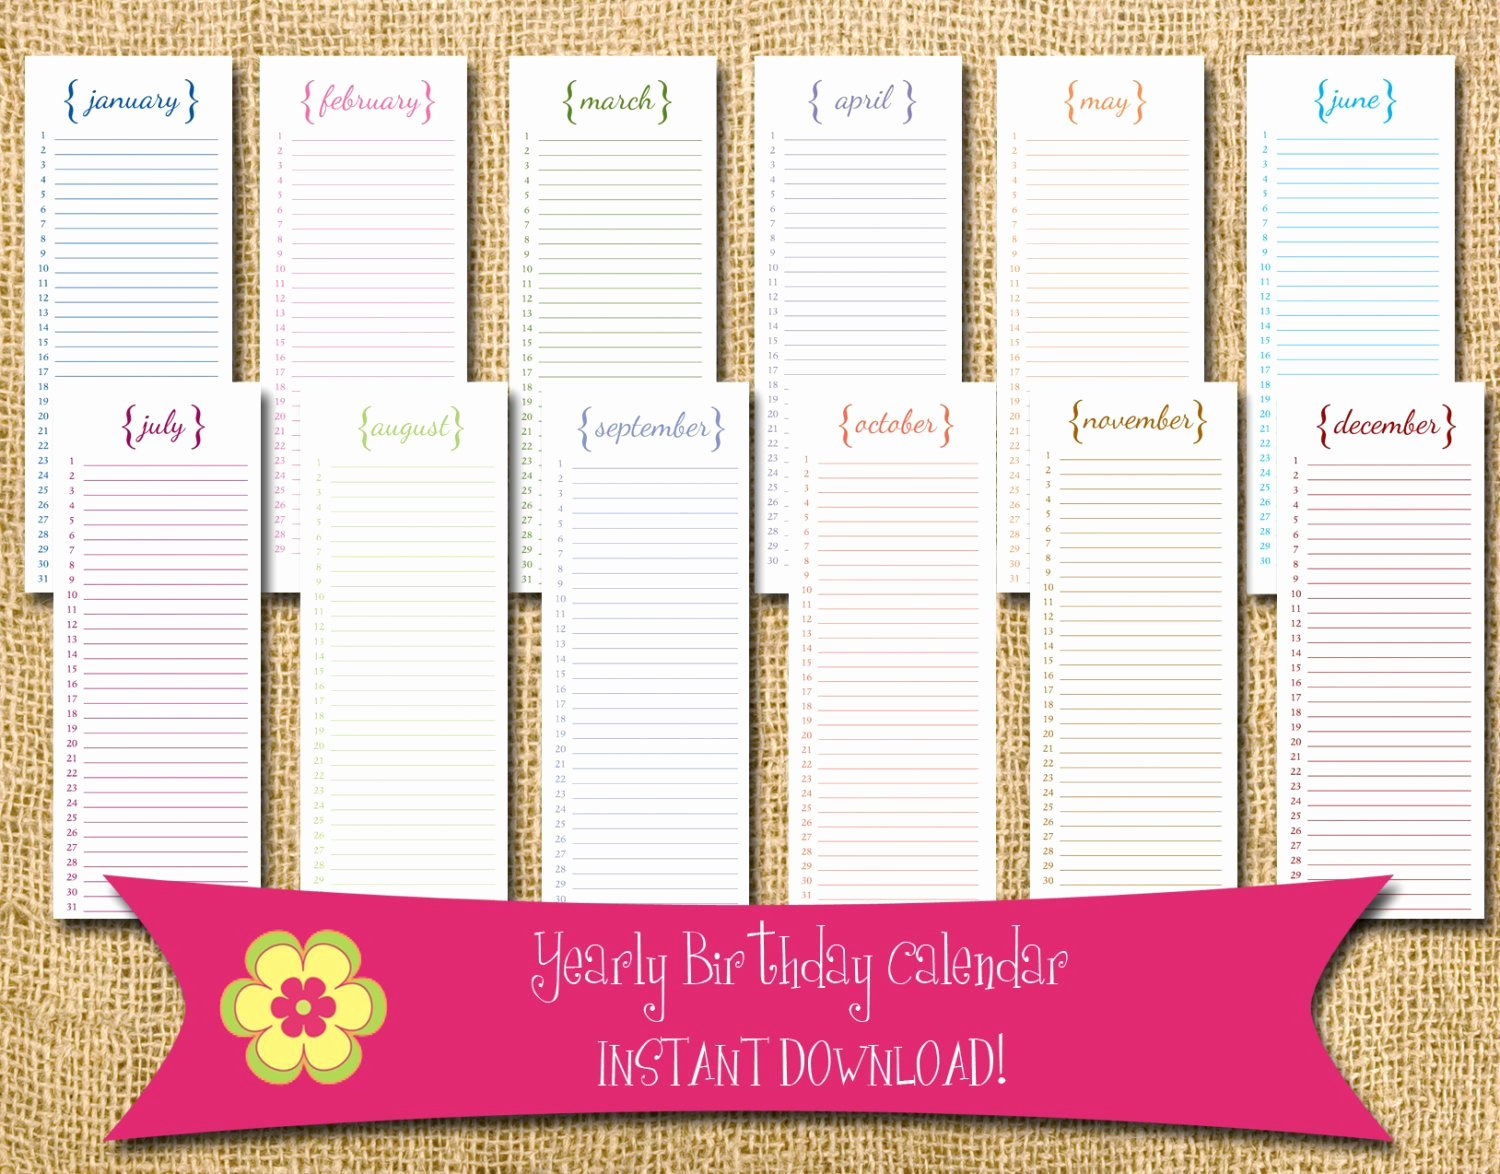 Printable Birthday Calendar Template Beautiful Instant Download Perpetual Birthday Calendar with Brackets